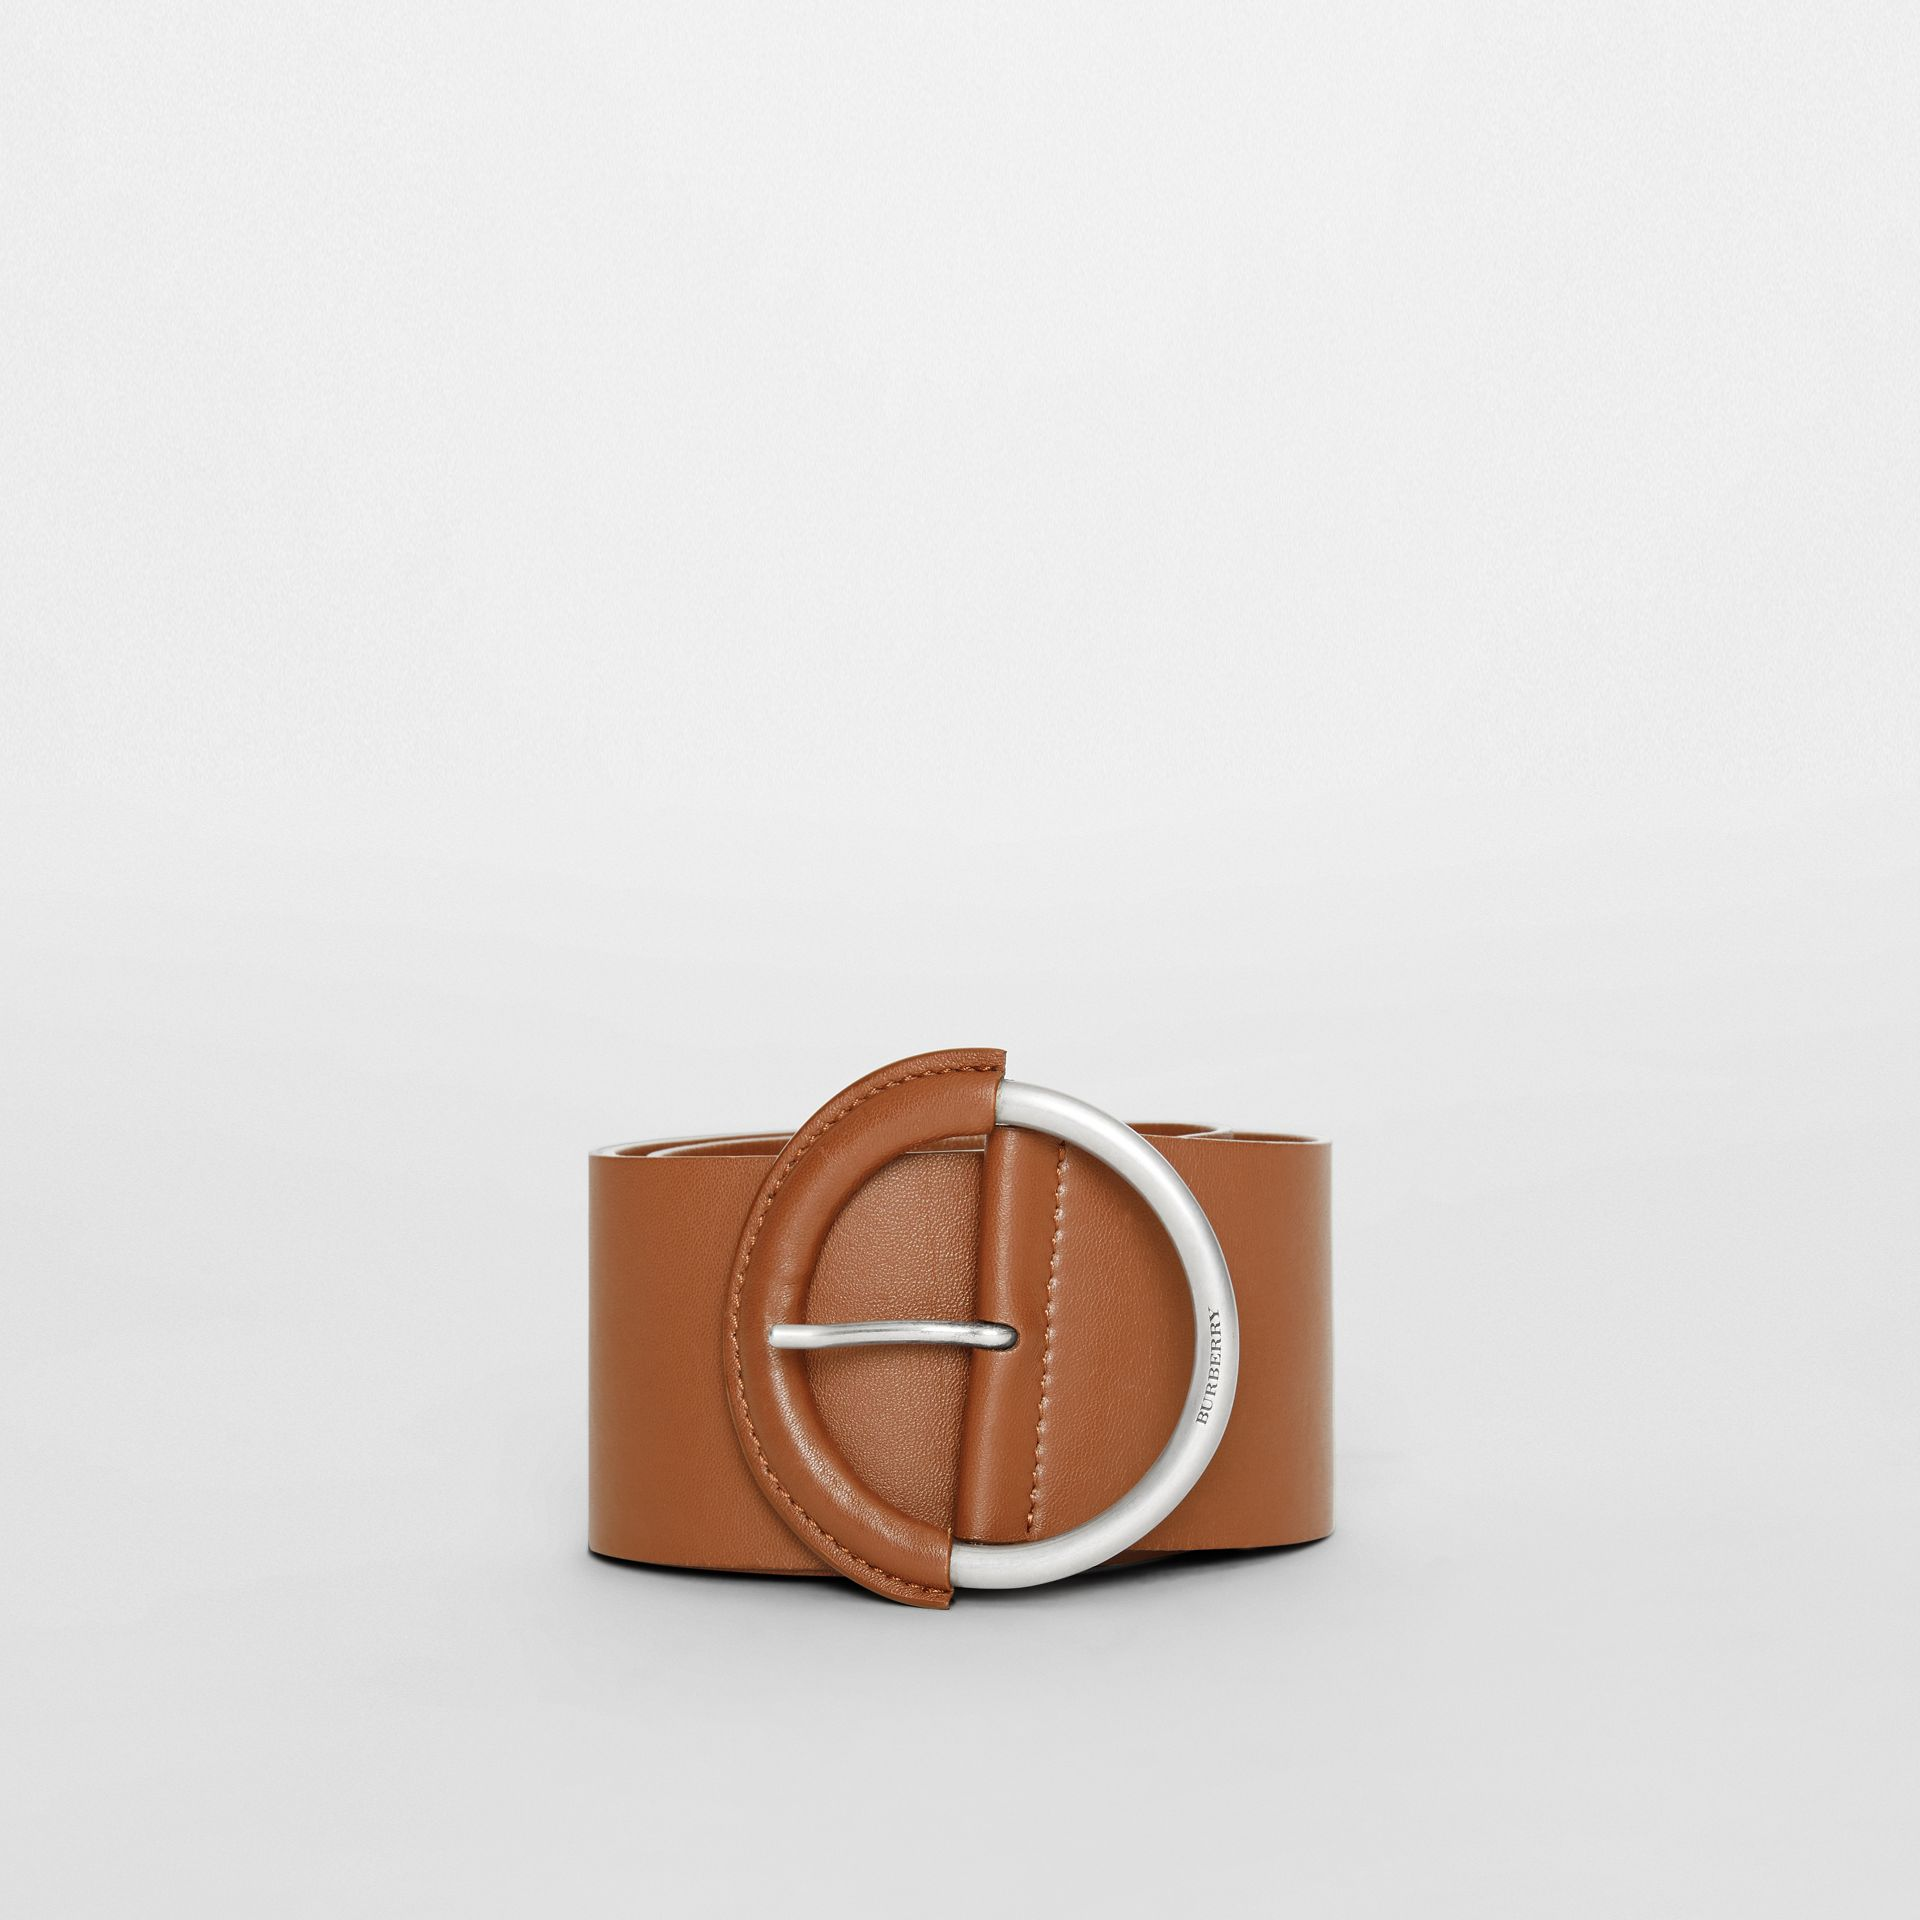 Round Buckle Leather Belt in Tan - Women | Burberry - gallery image 2